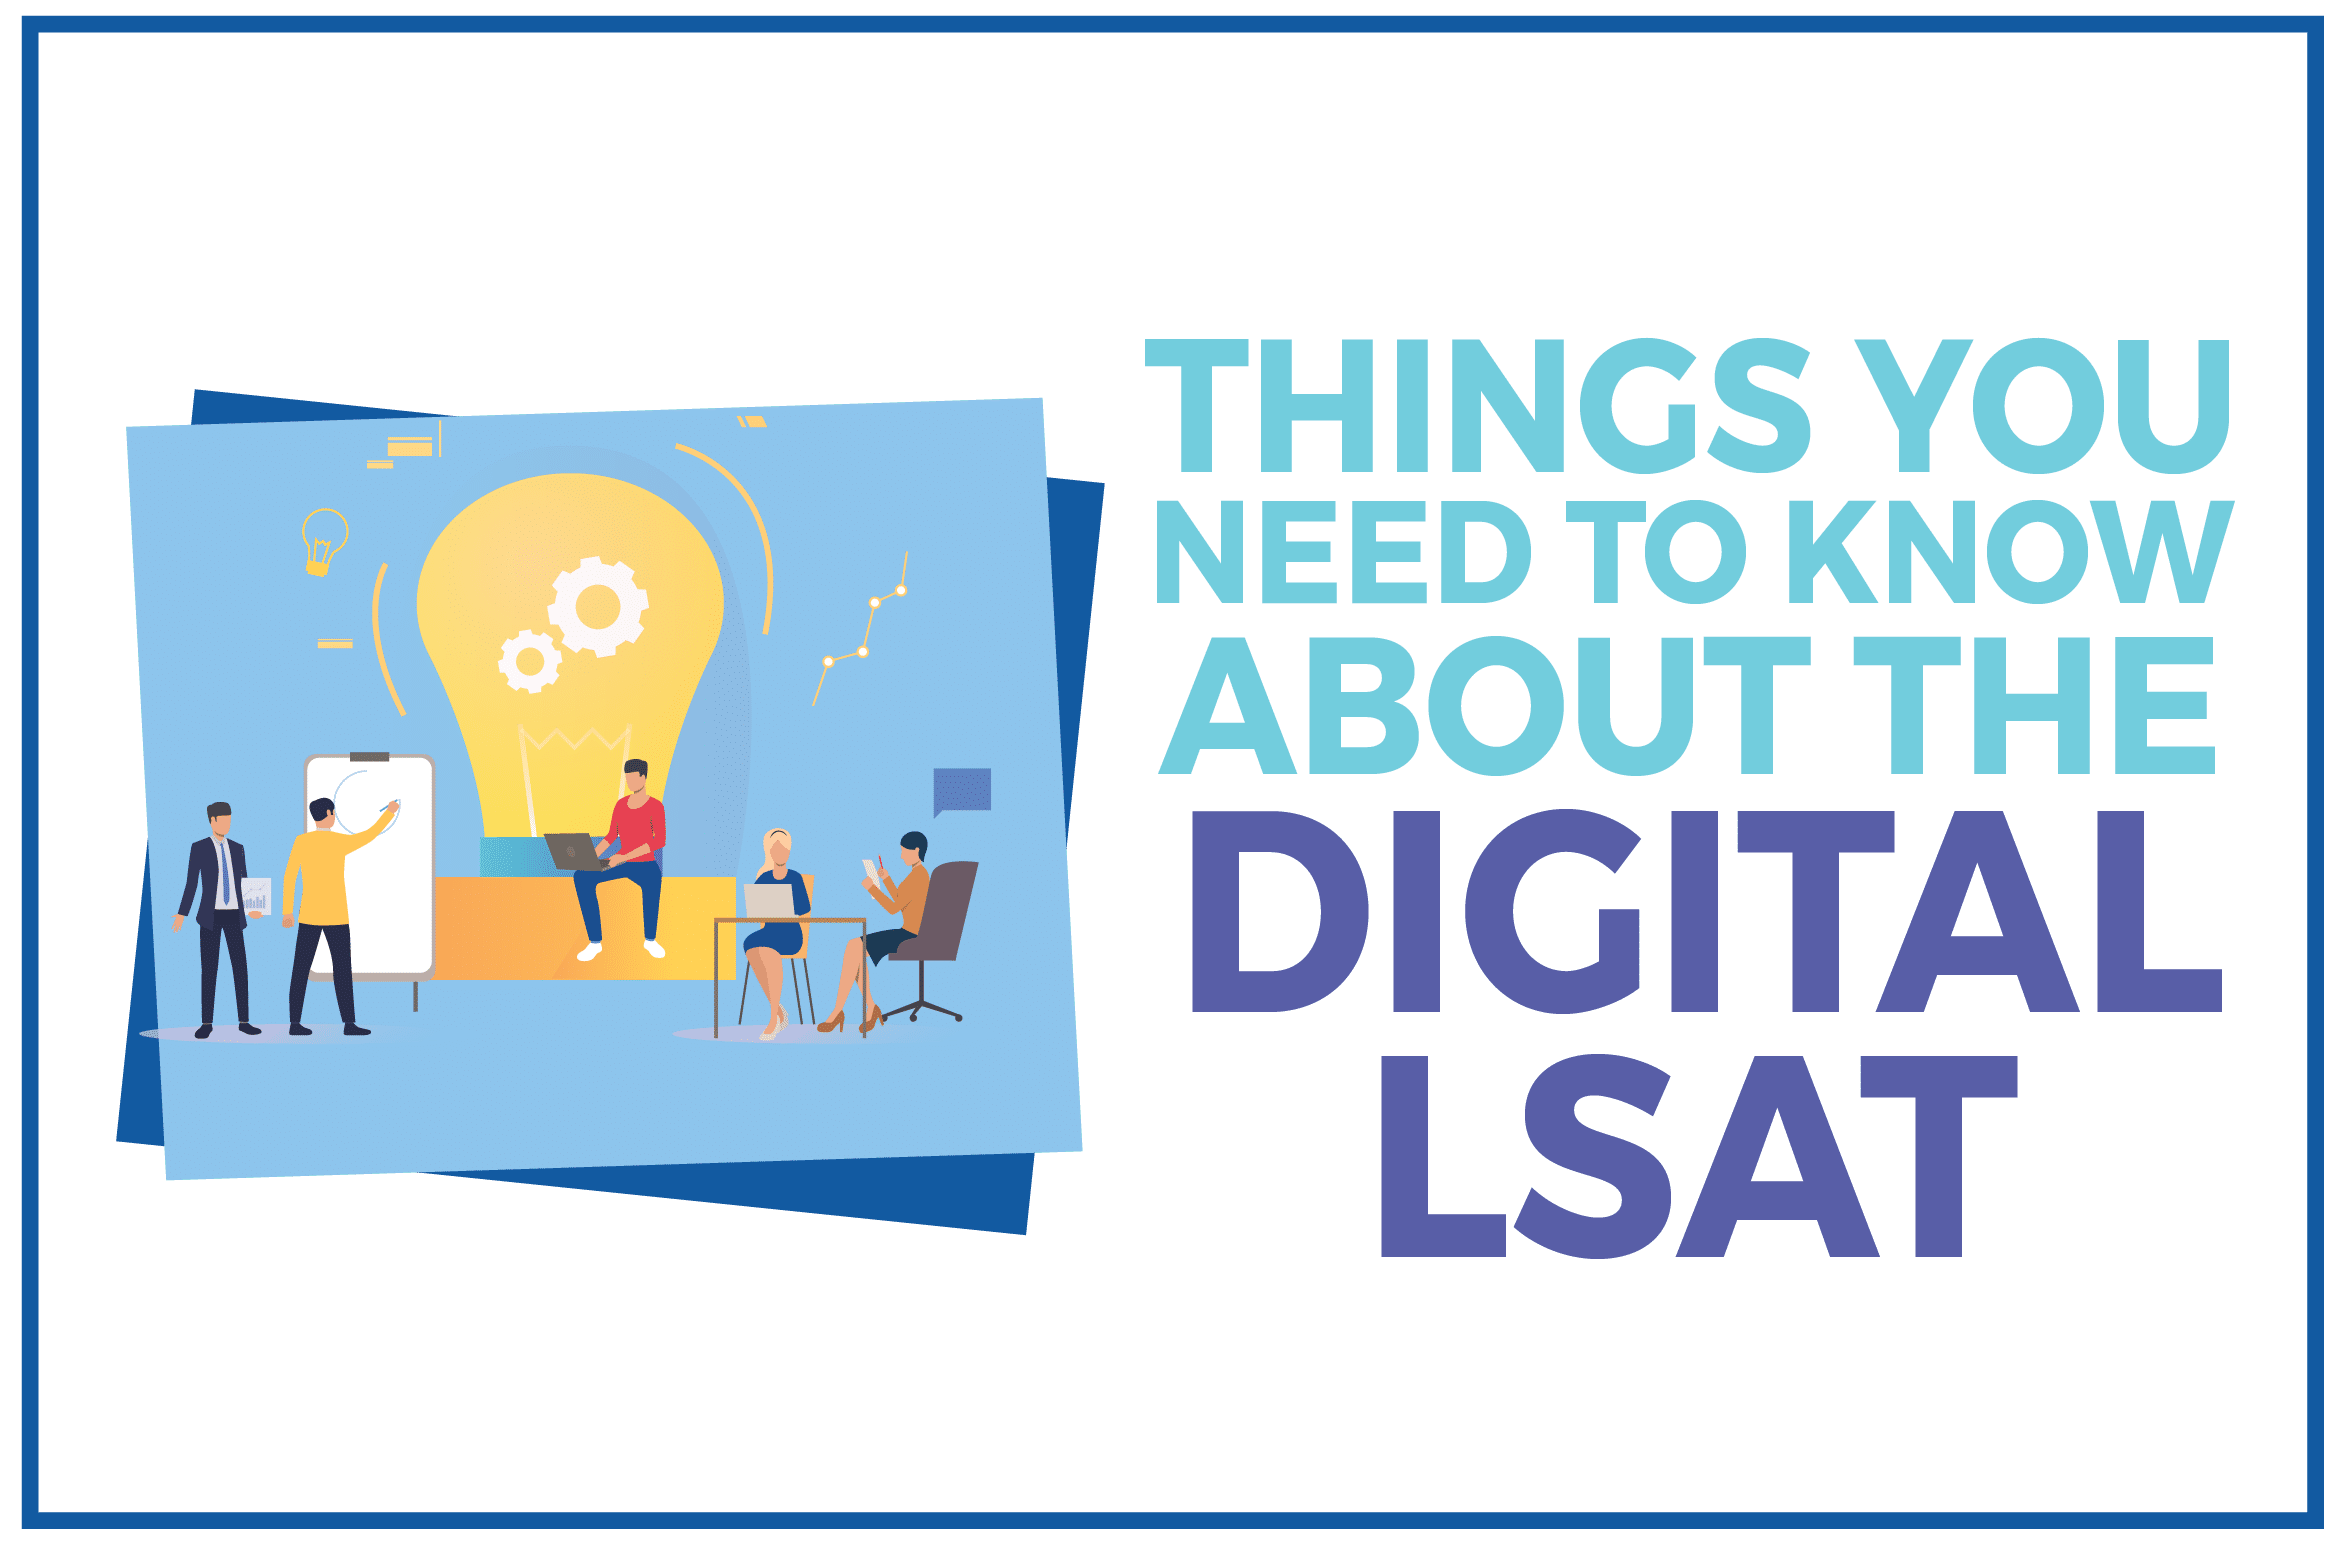 Things You Need to Know About the Digital LSAT